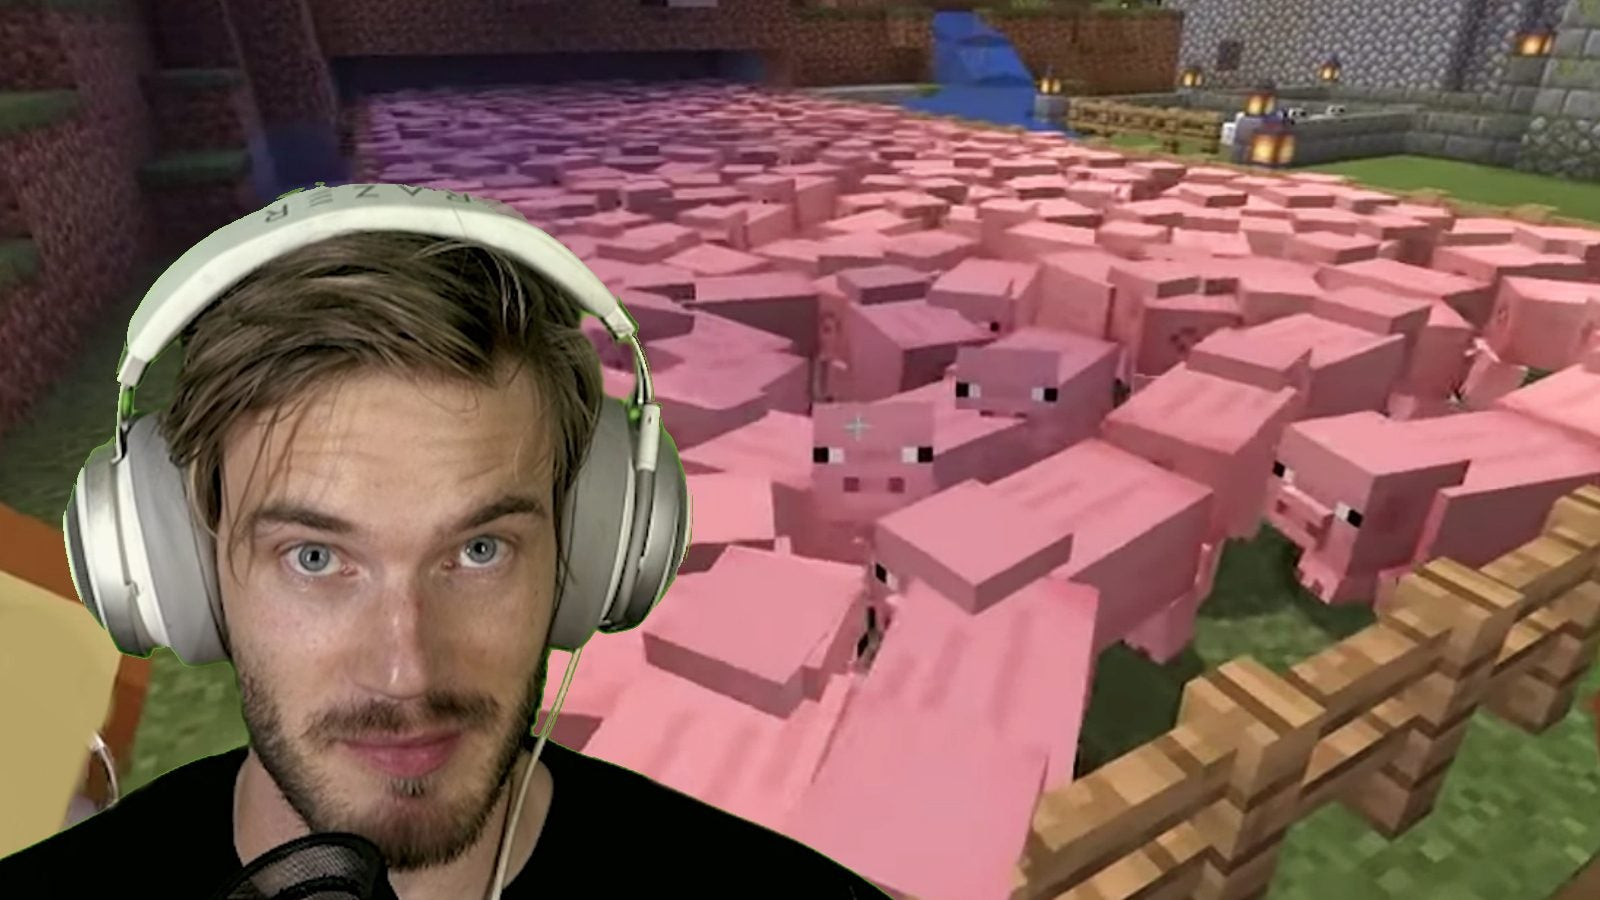 Minecraft Is The Top YouTube Game Of 2019, Thanks To A Boost From PewDiePie